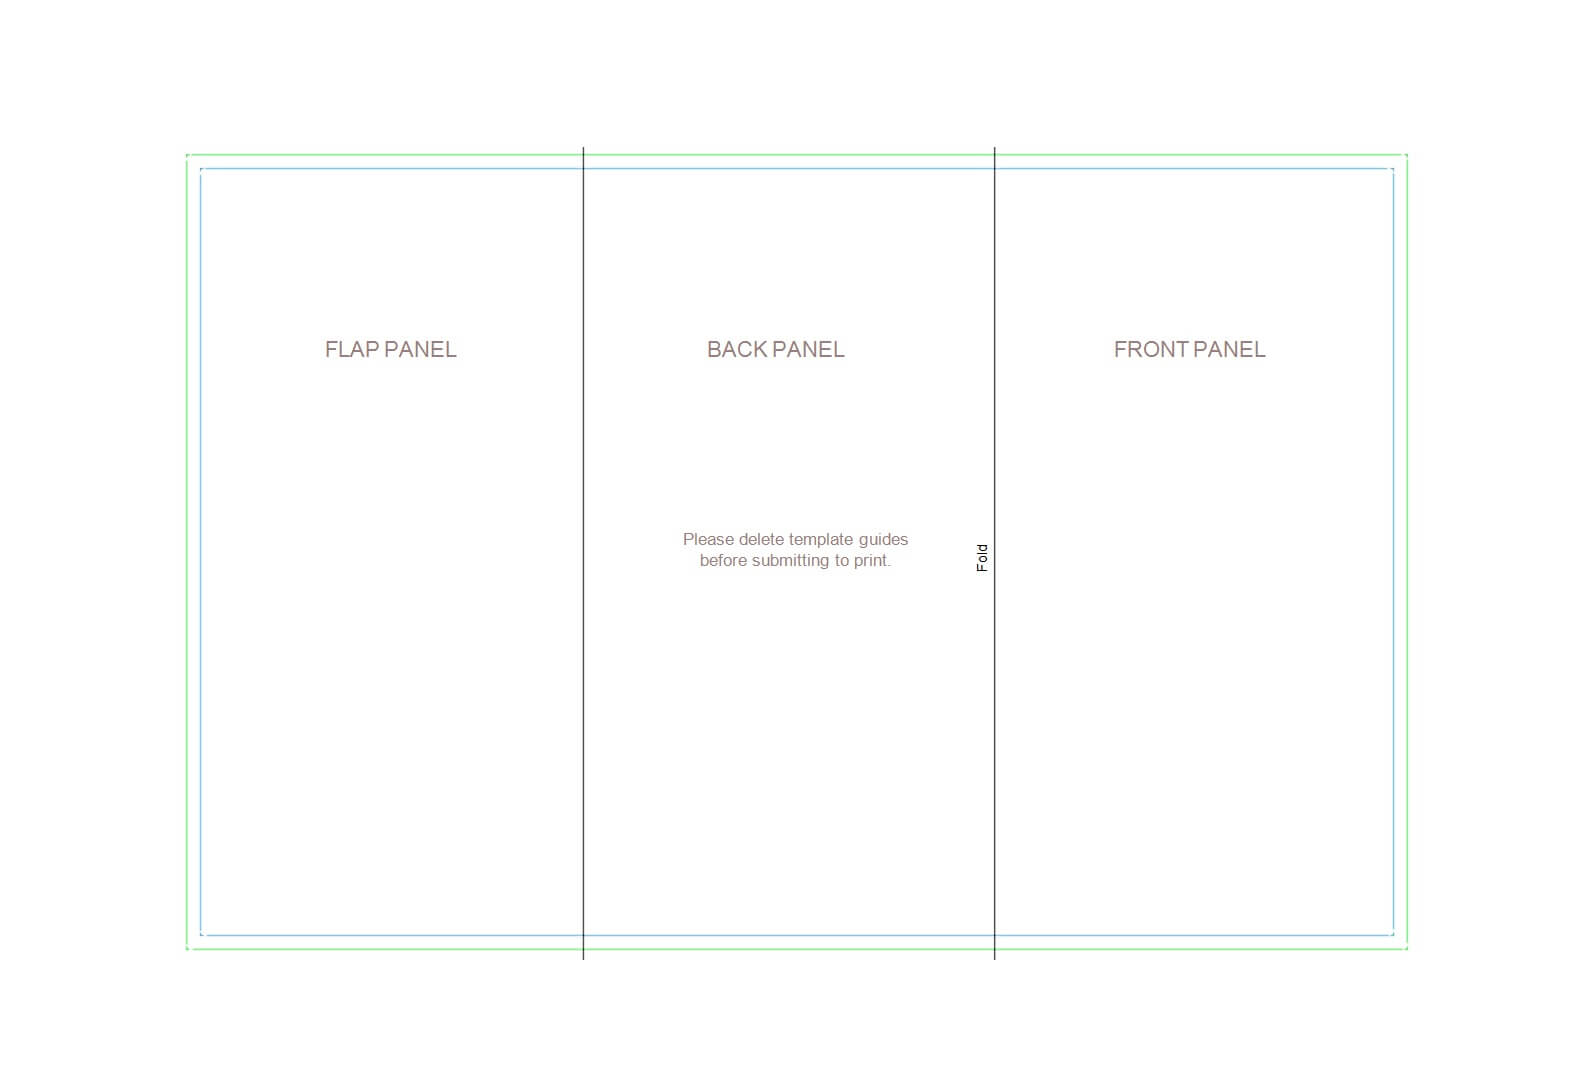 Pamphlet Template Docs - Tunu.redmini.co Intended For Brochure Template Google Drive